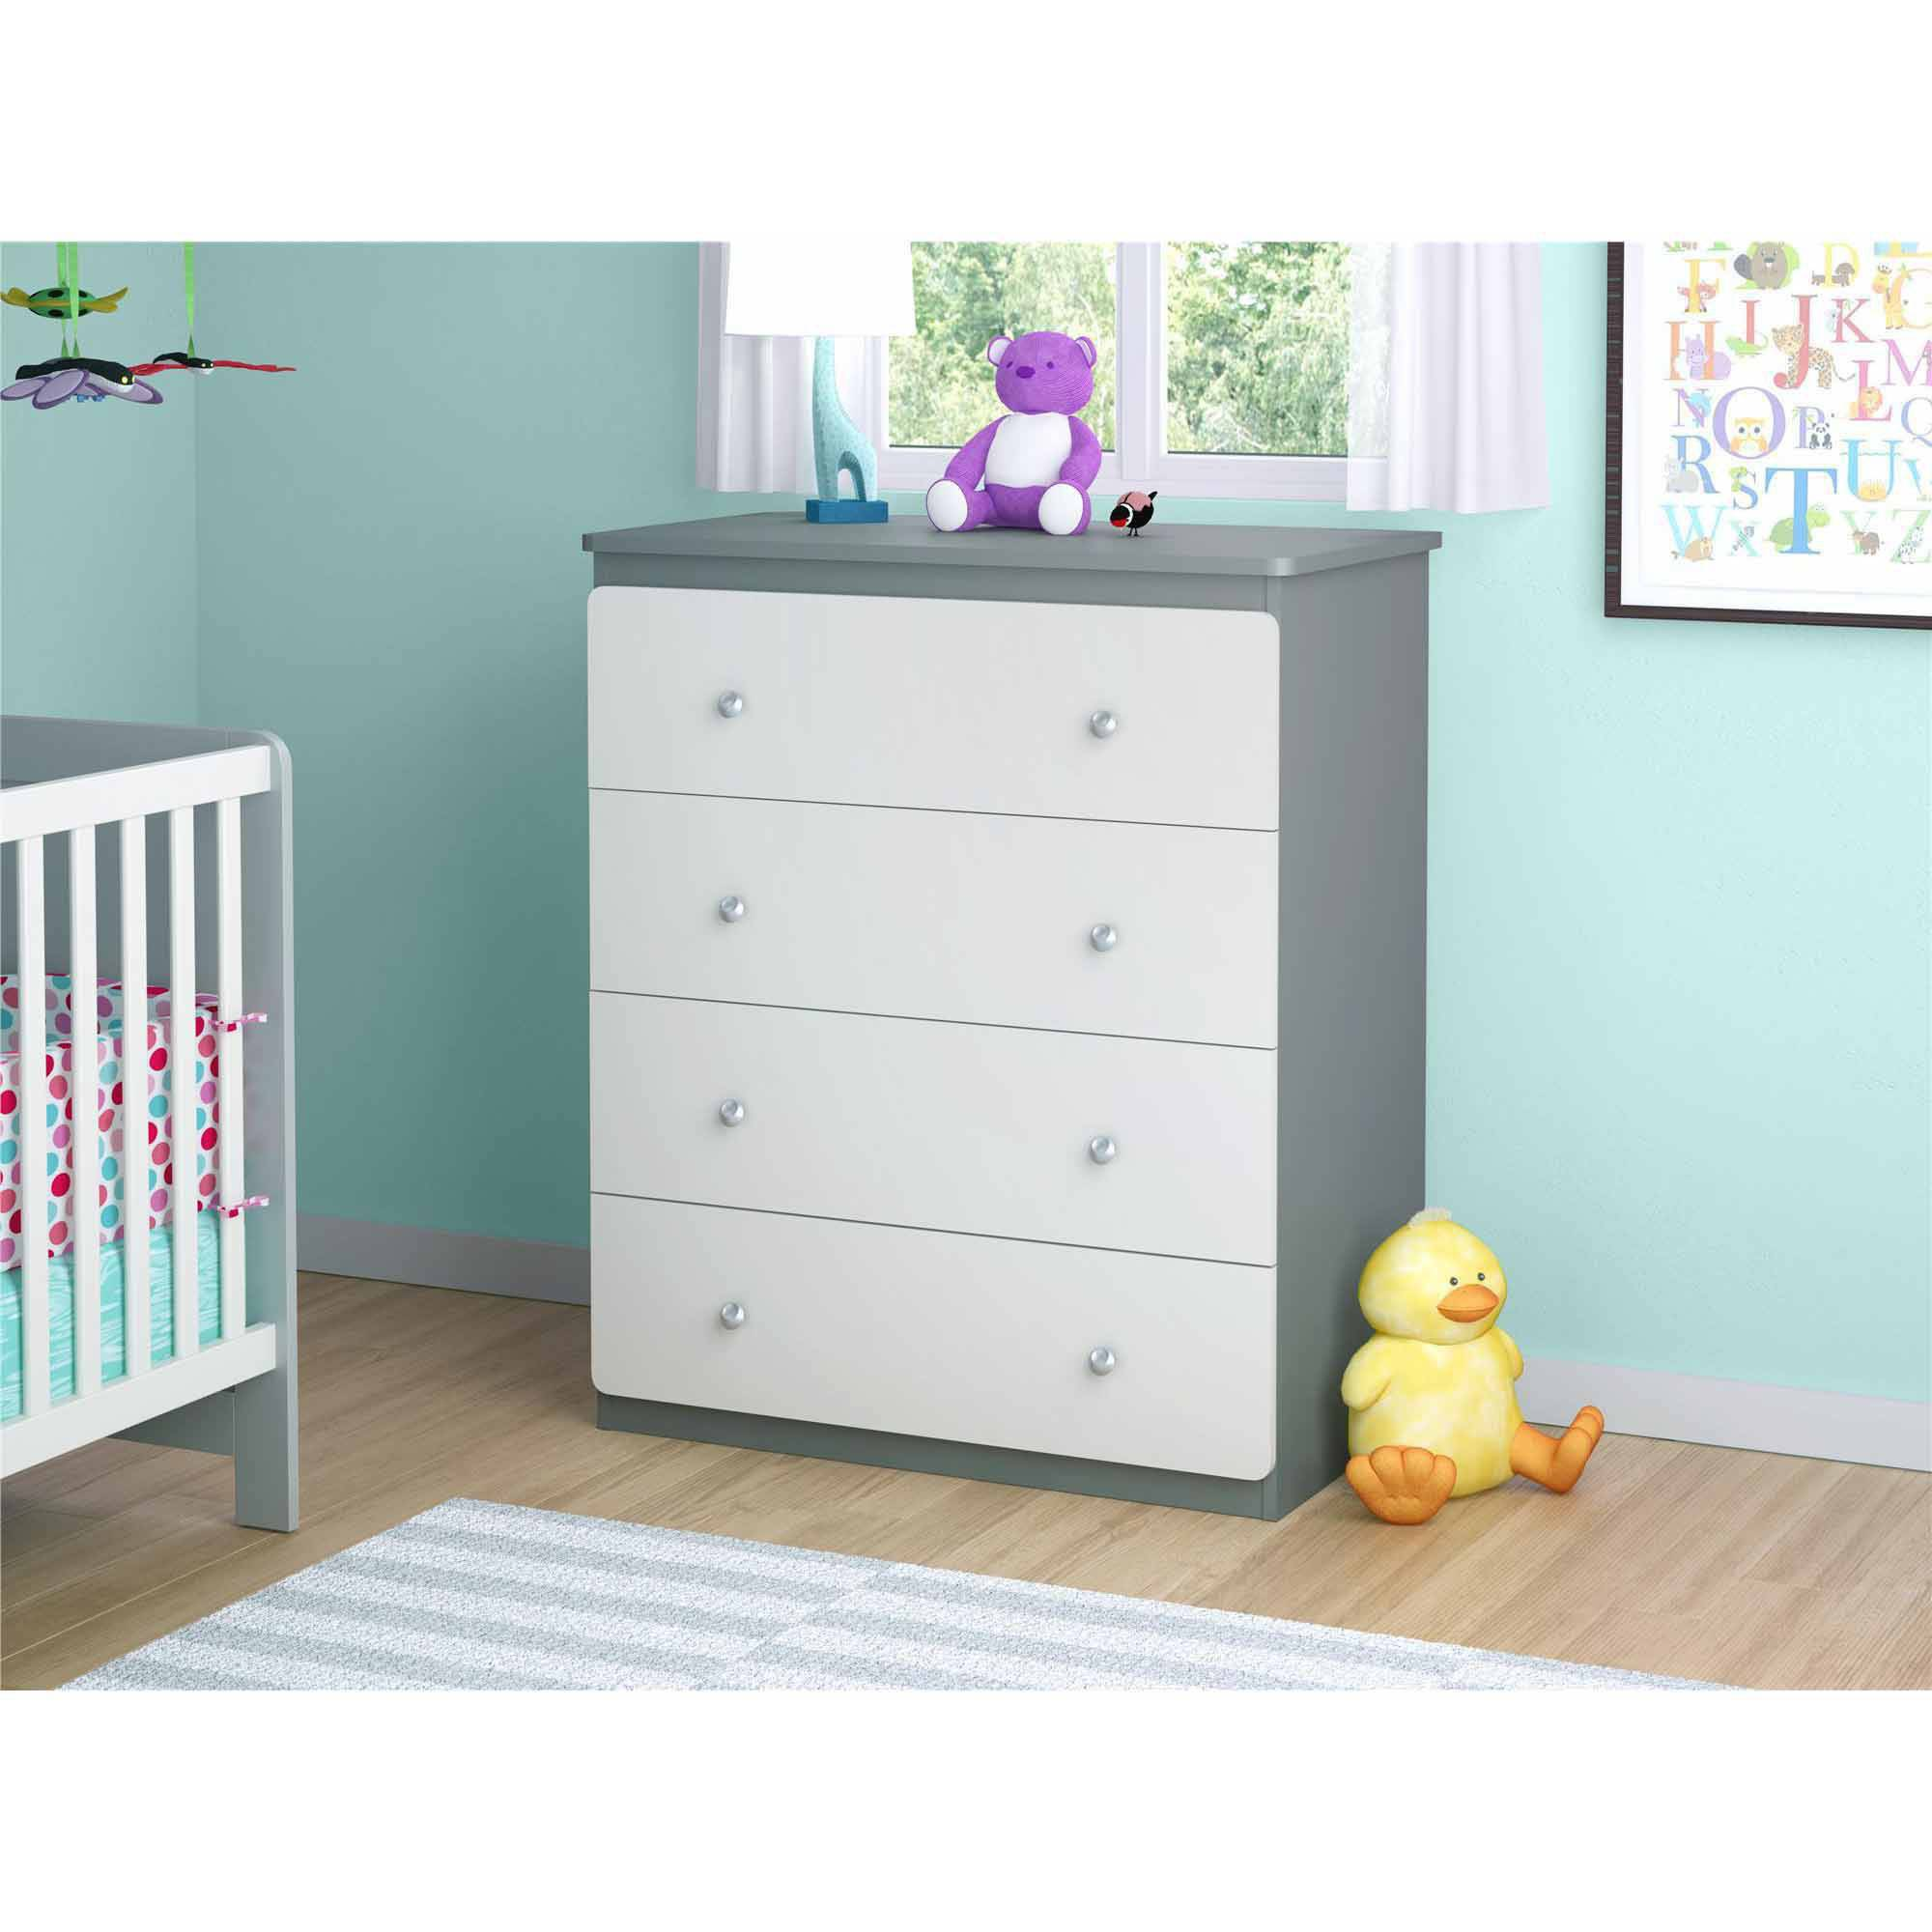 image dressers of ideas for design baby sale espresso dresser